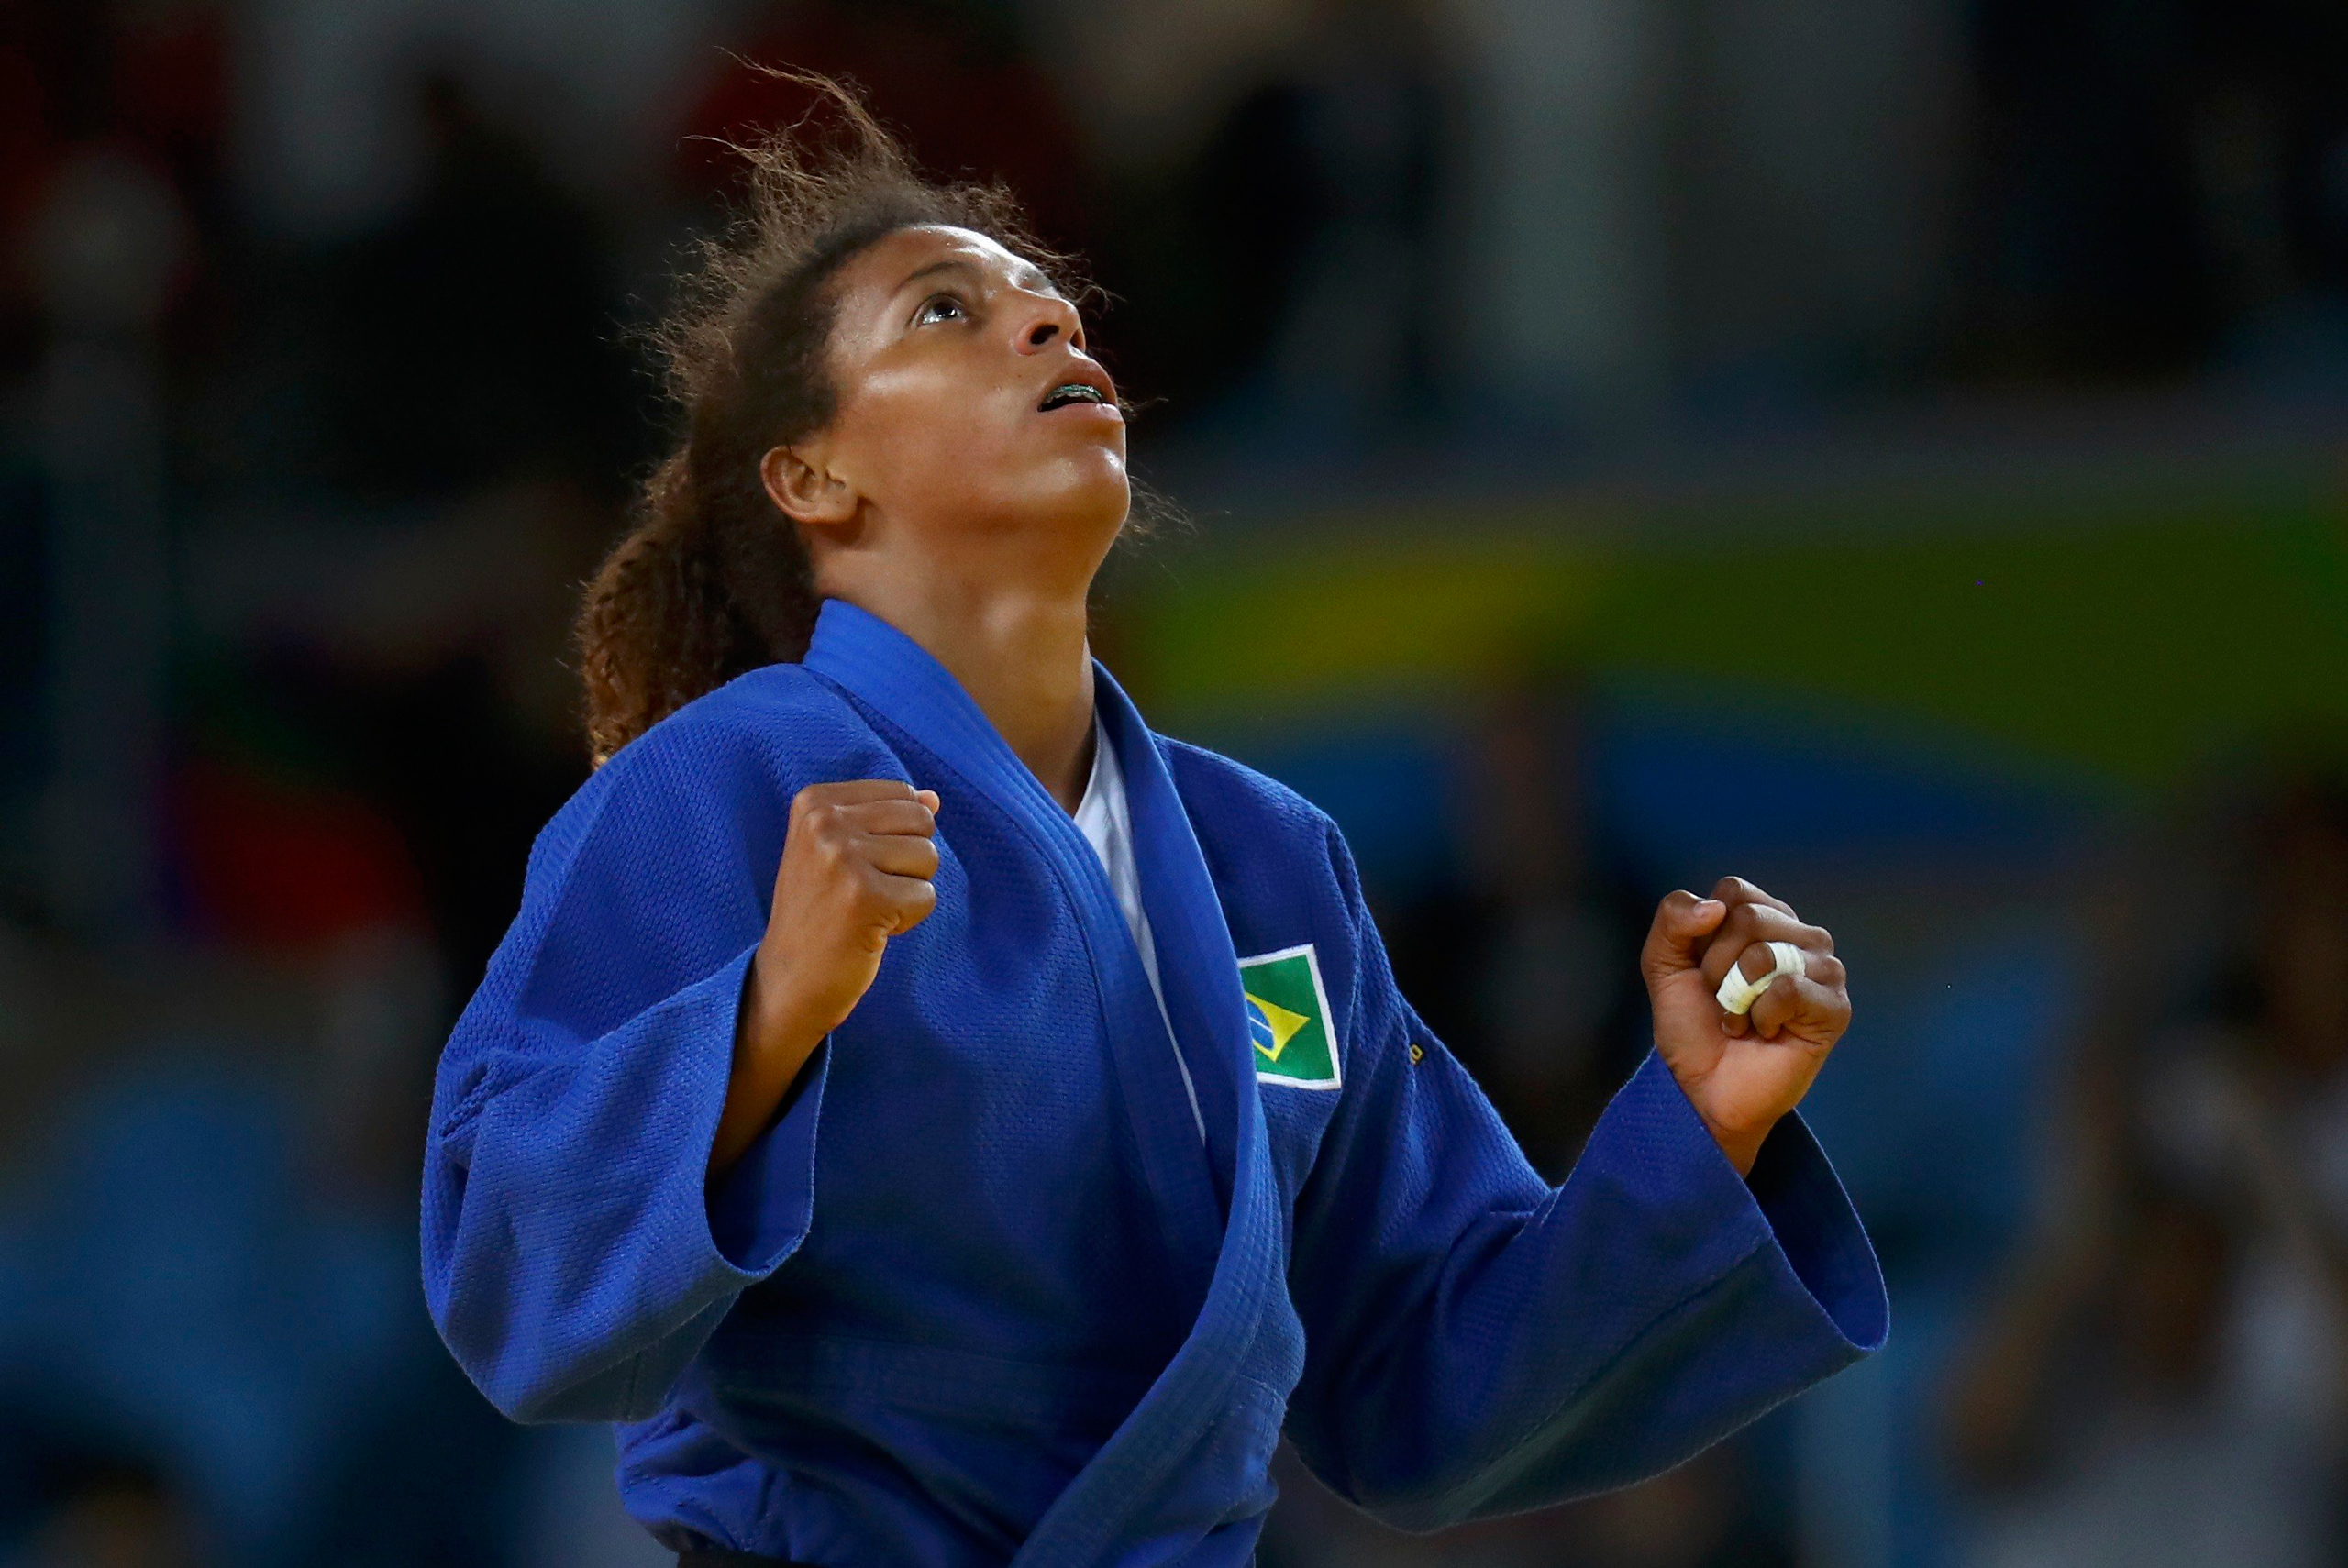 Brazil's Rafaela Silva celebrates after winning the gold medal of the women's 57-kg judo competition at the 2016 Summer Olympics in Rio de Janeiro on Aug. 8, 2016.